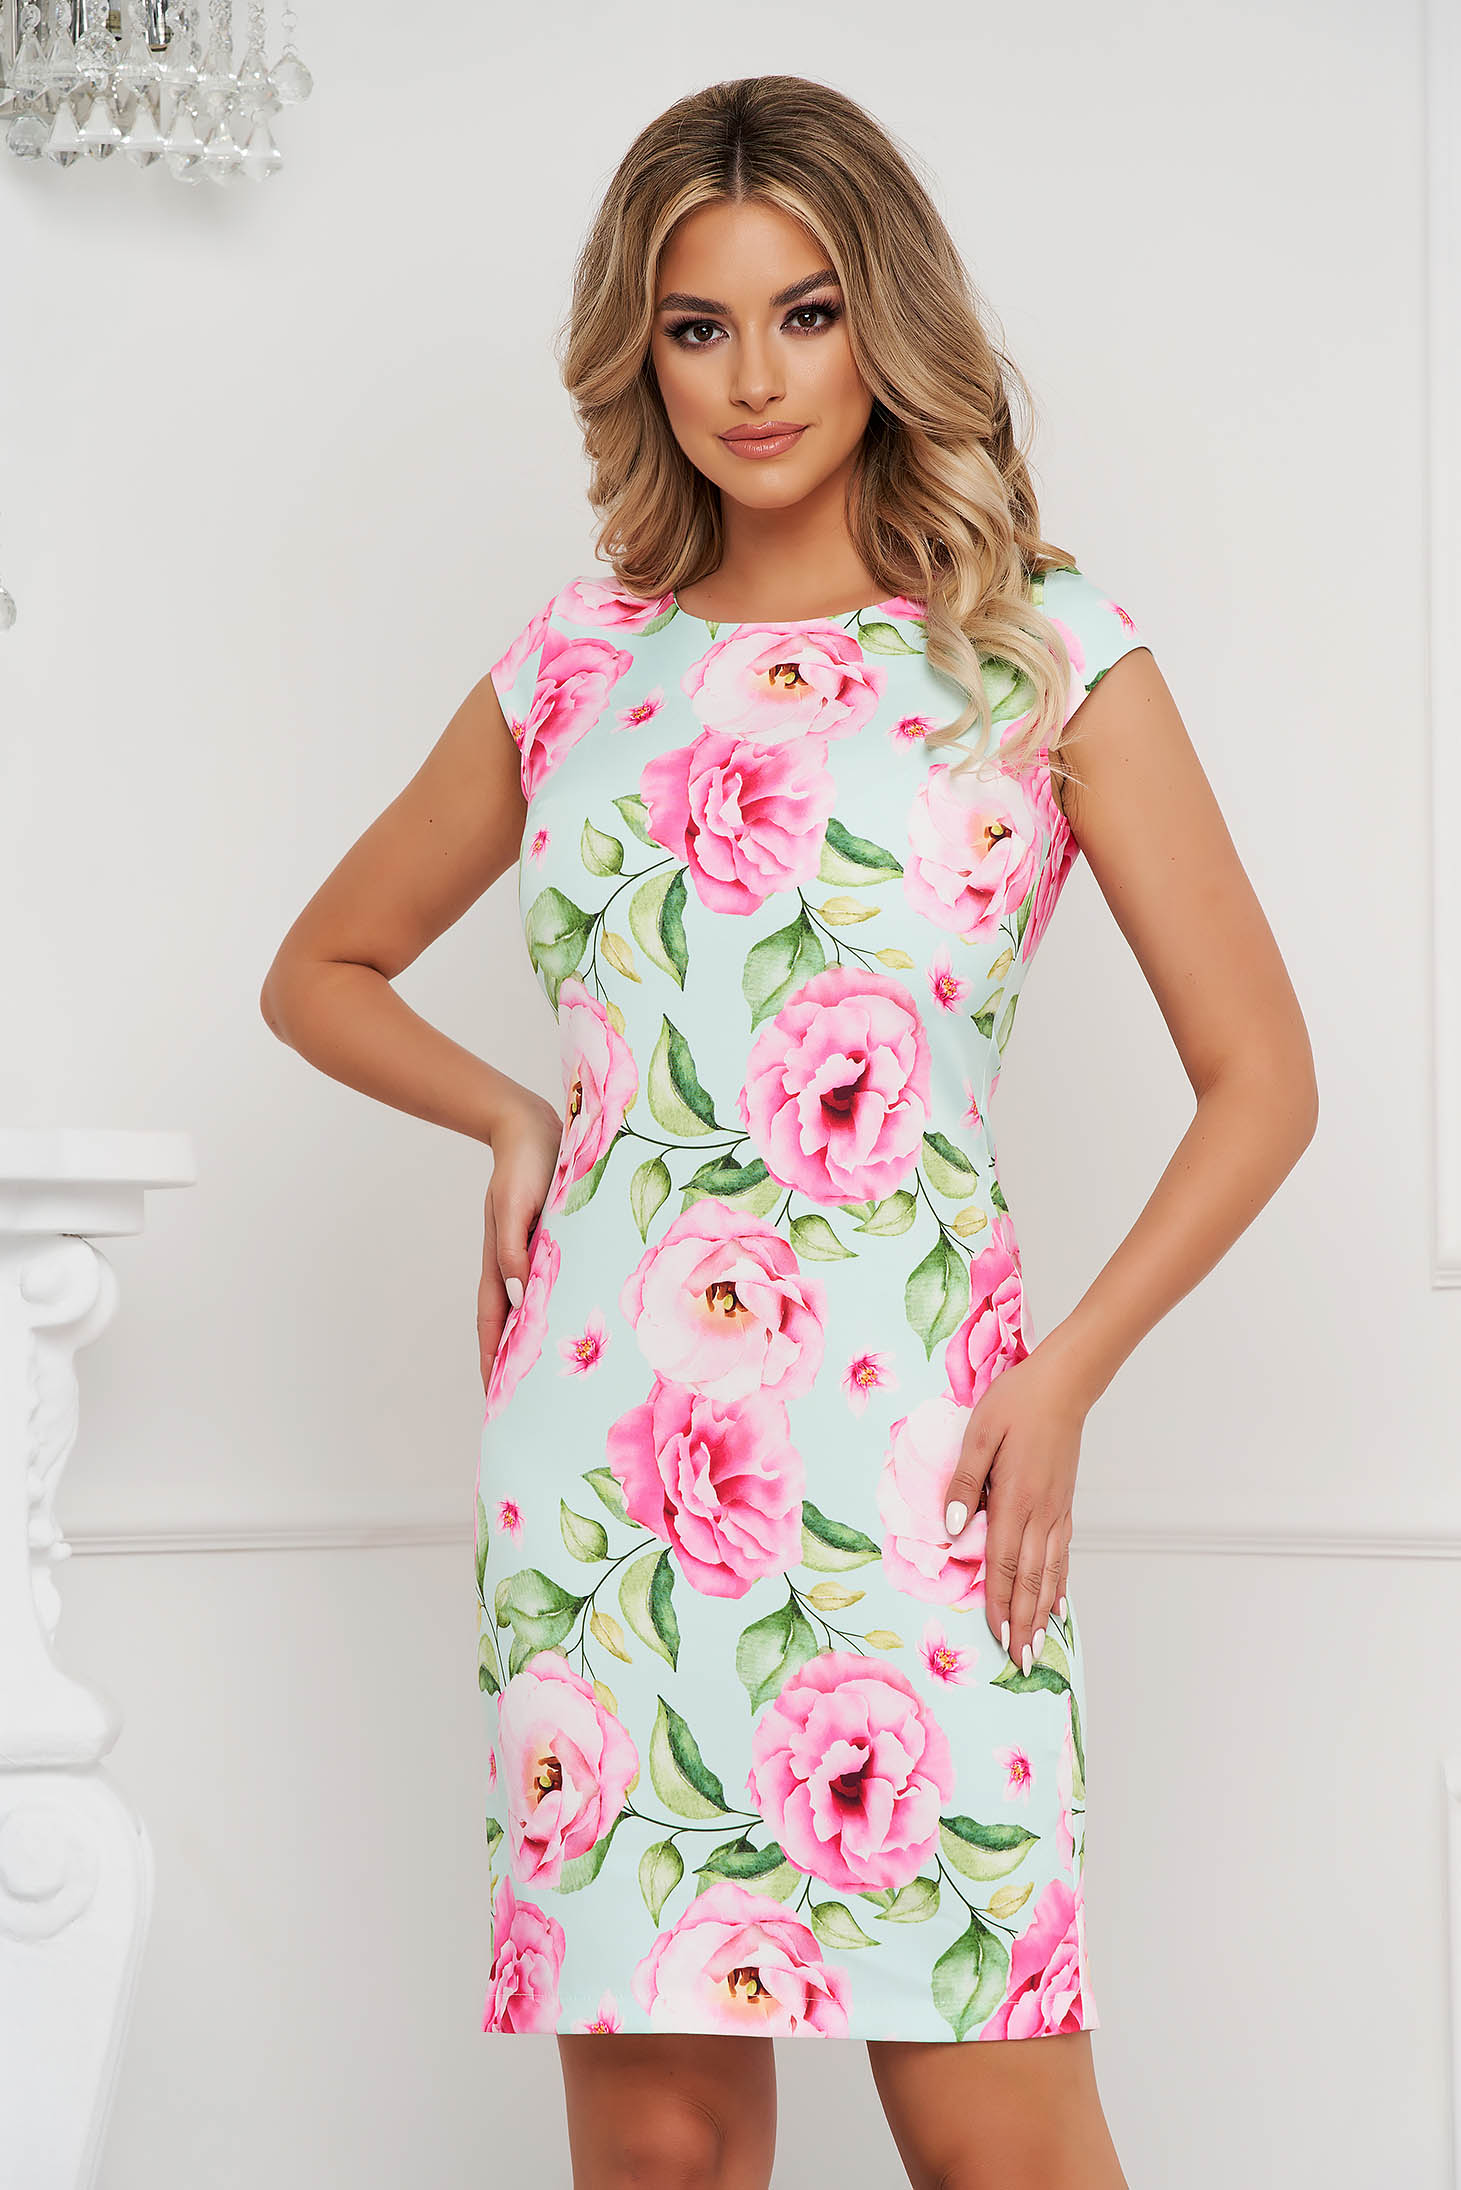 StarShinerS dress office short cut straight thin fabric with floral print